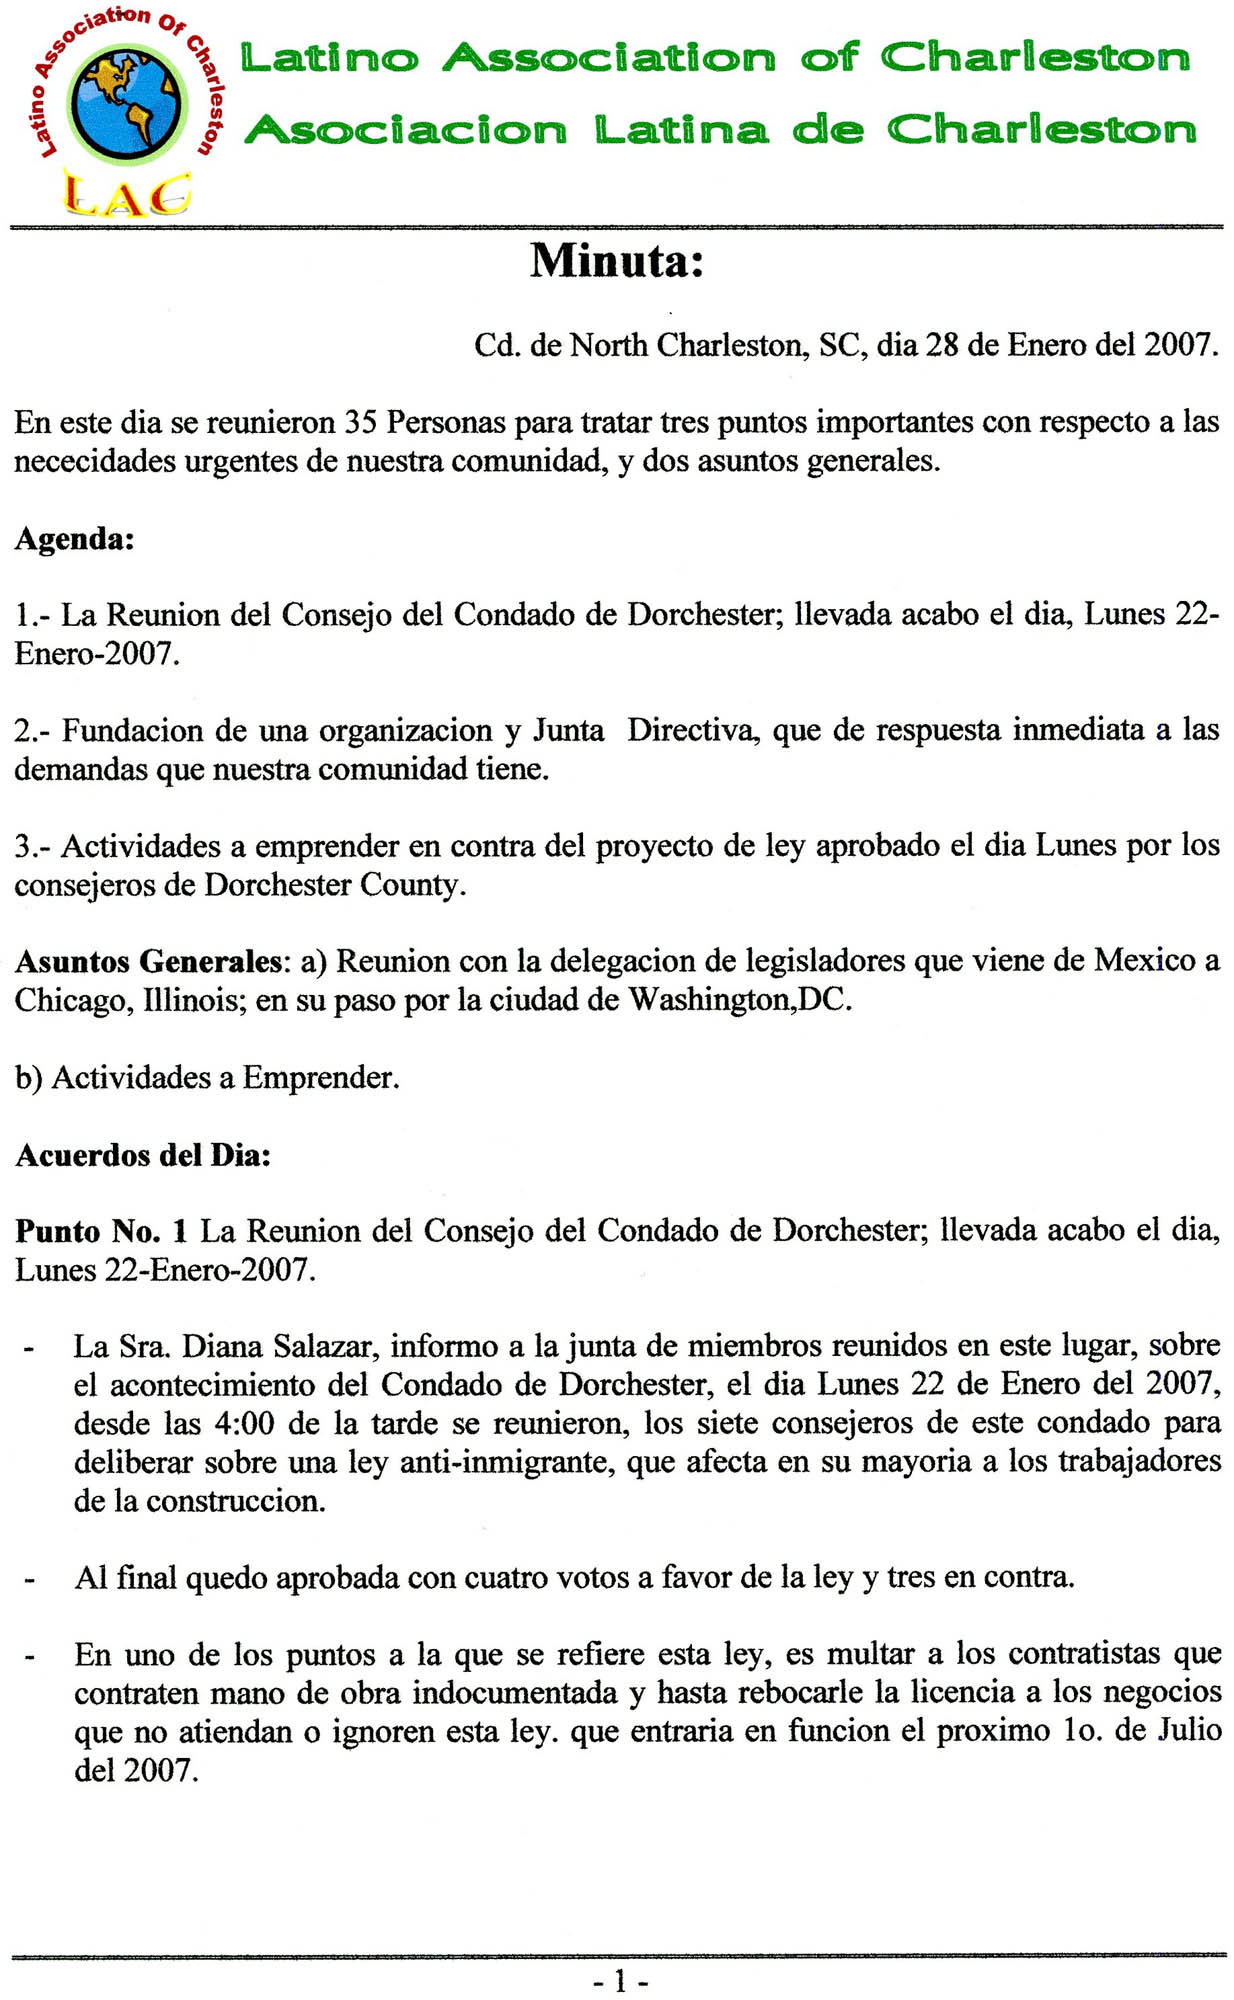 Acta de una reunión de la Asociación Latina de Charleston  /  Latino Association of Charleston Meeting Minutes